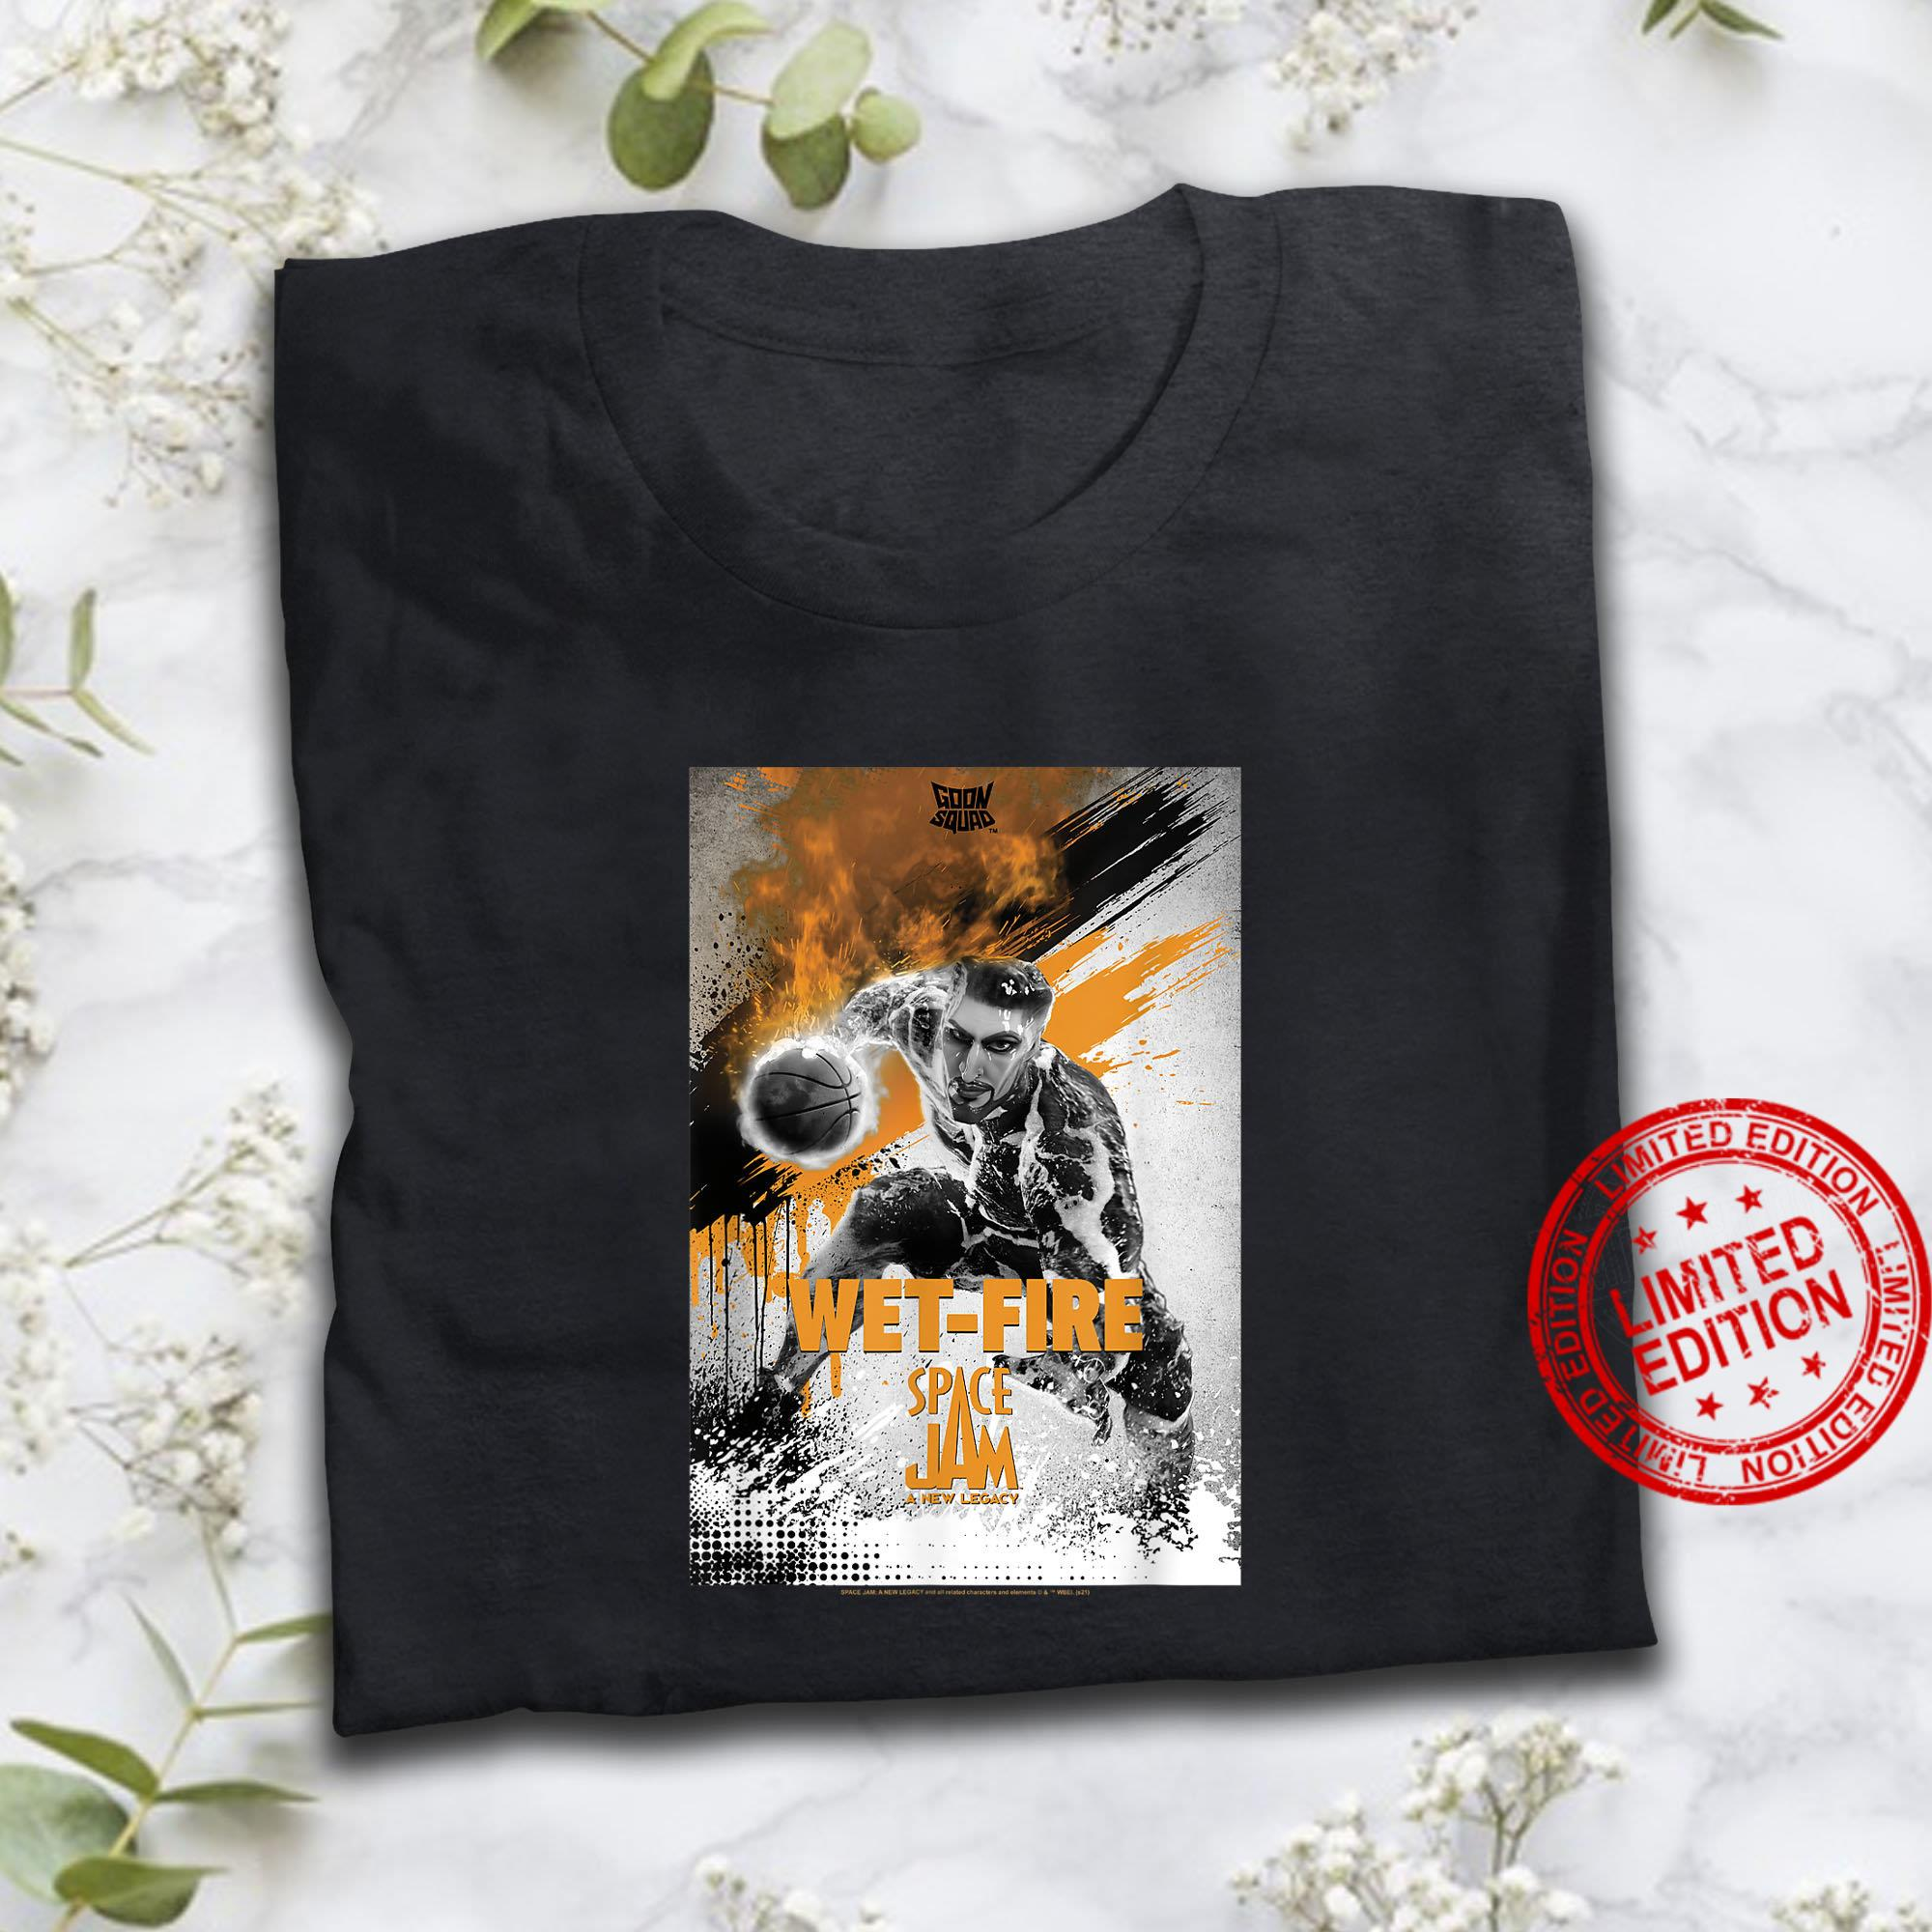 Space Jam A New Legacy Goon Squad Wet-Fire Poster Shirt